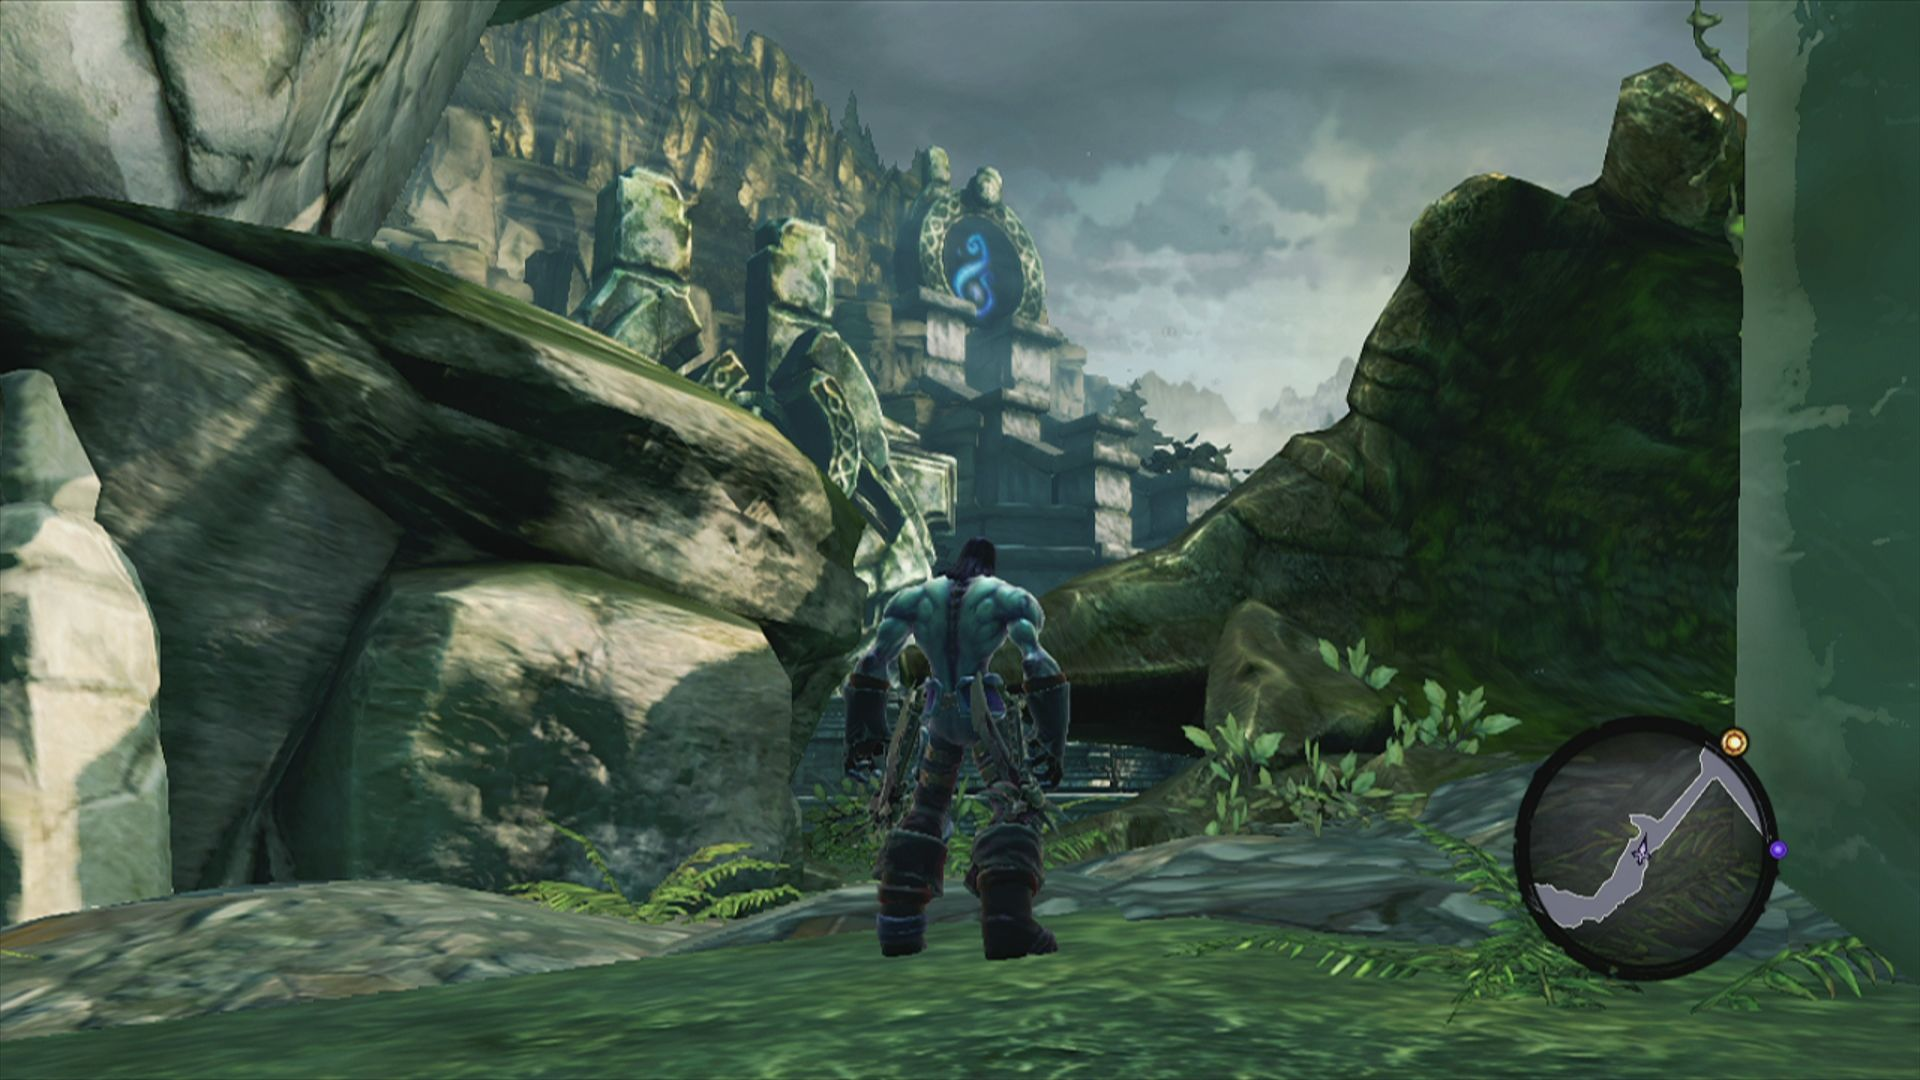 Darksiders II Xbox 360 This structure in the distance looks quite interesting